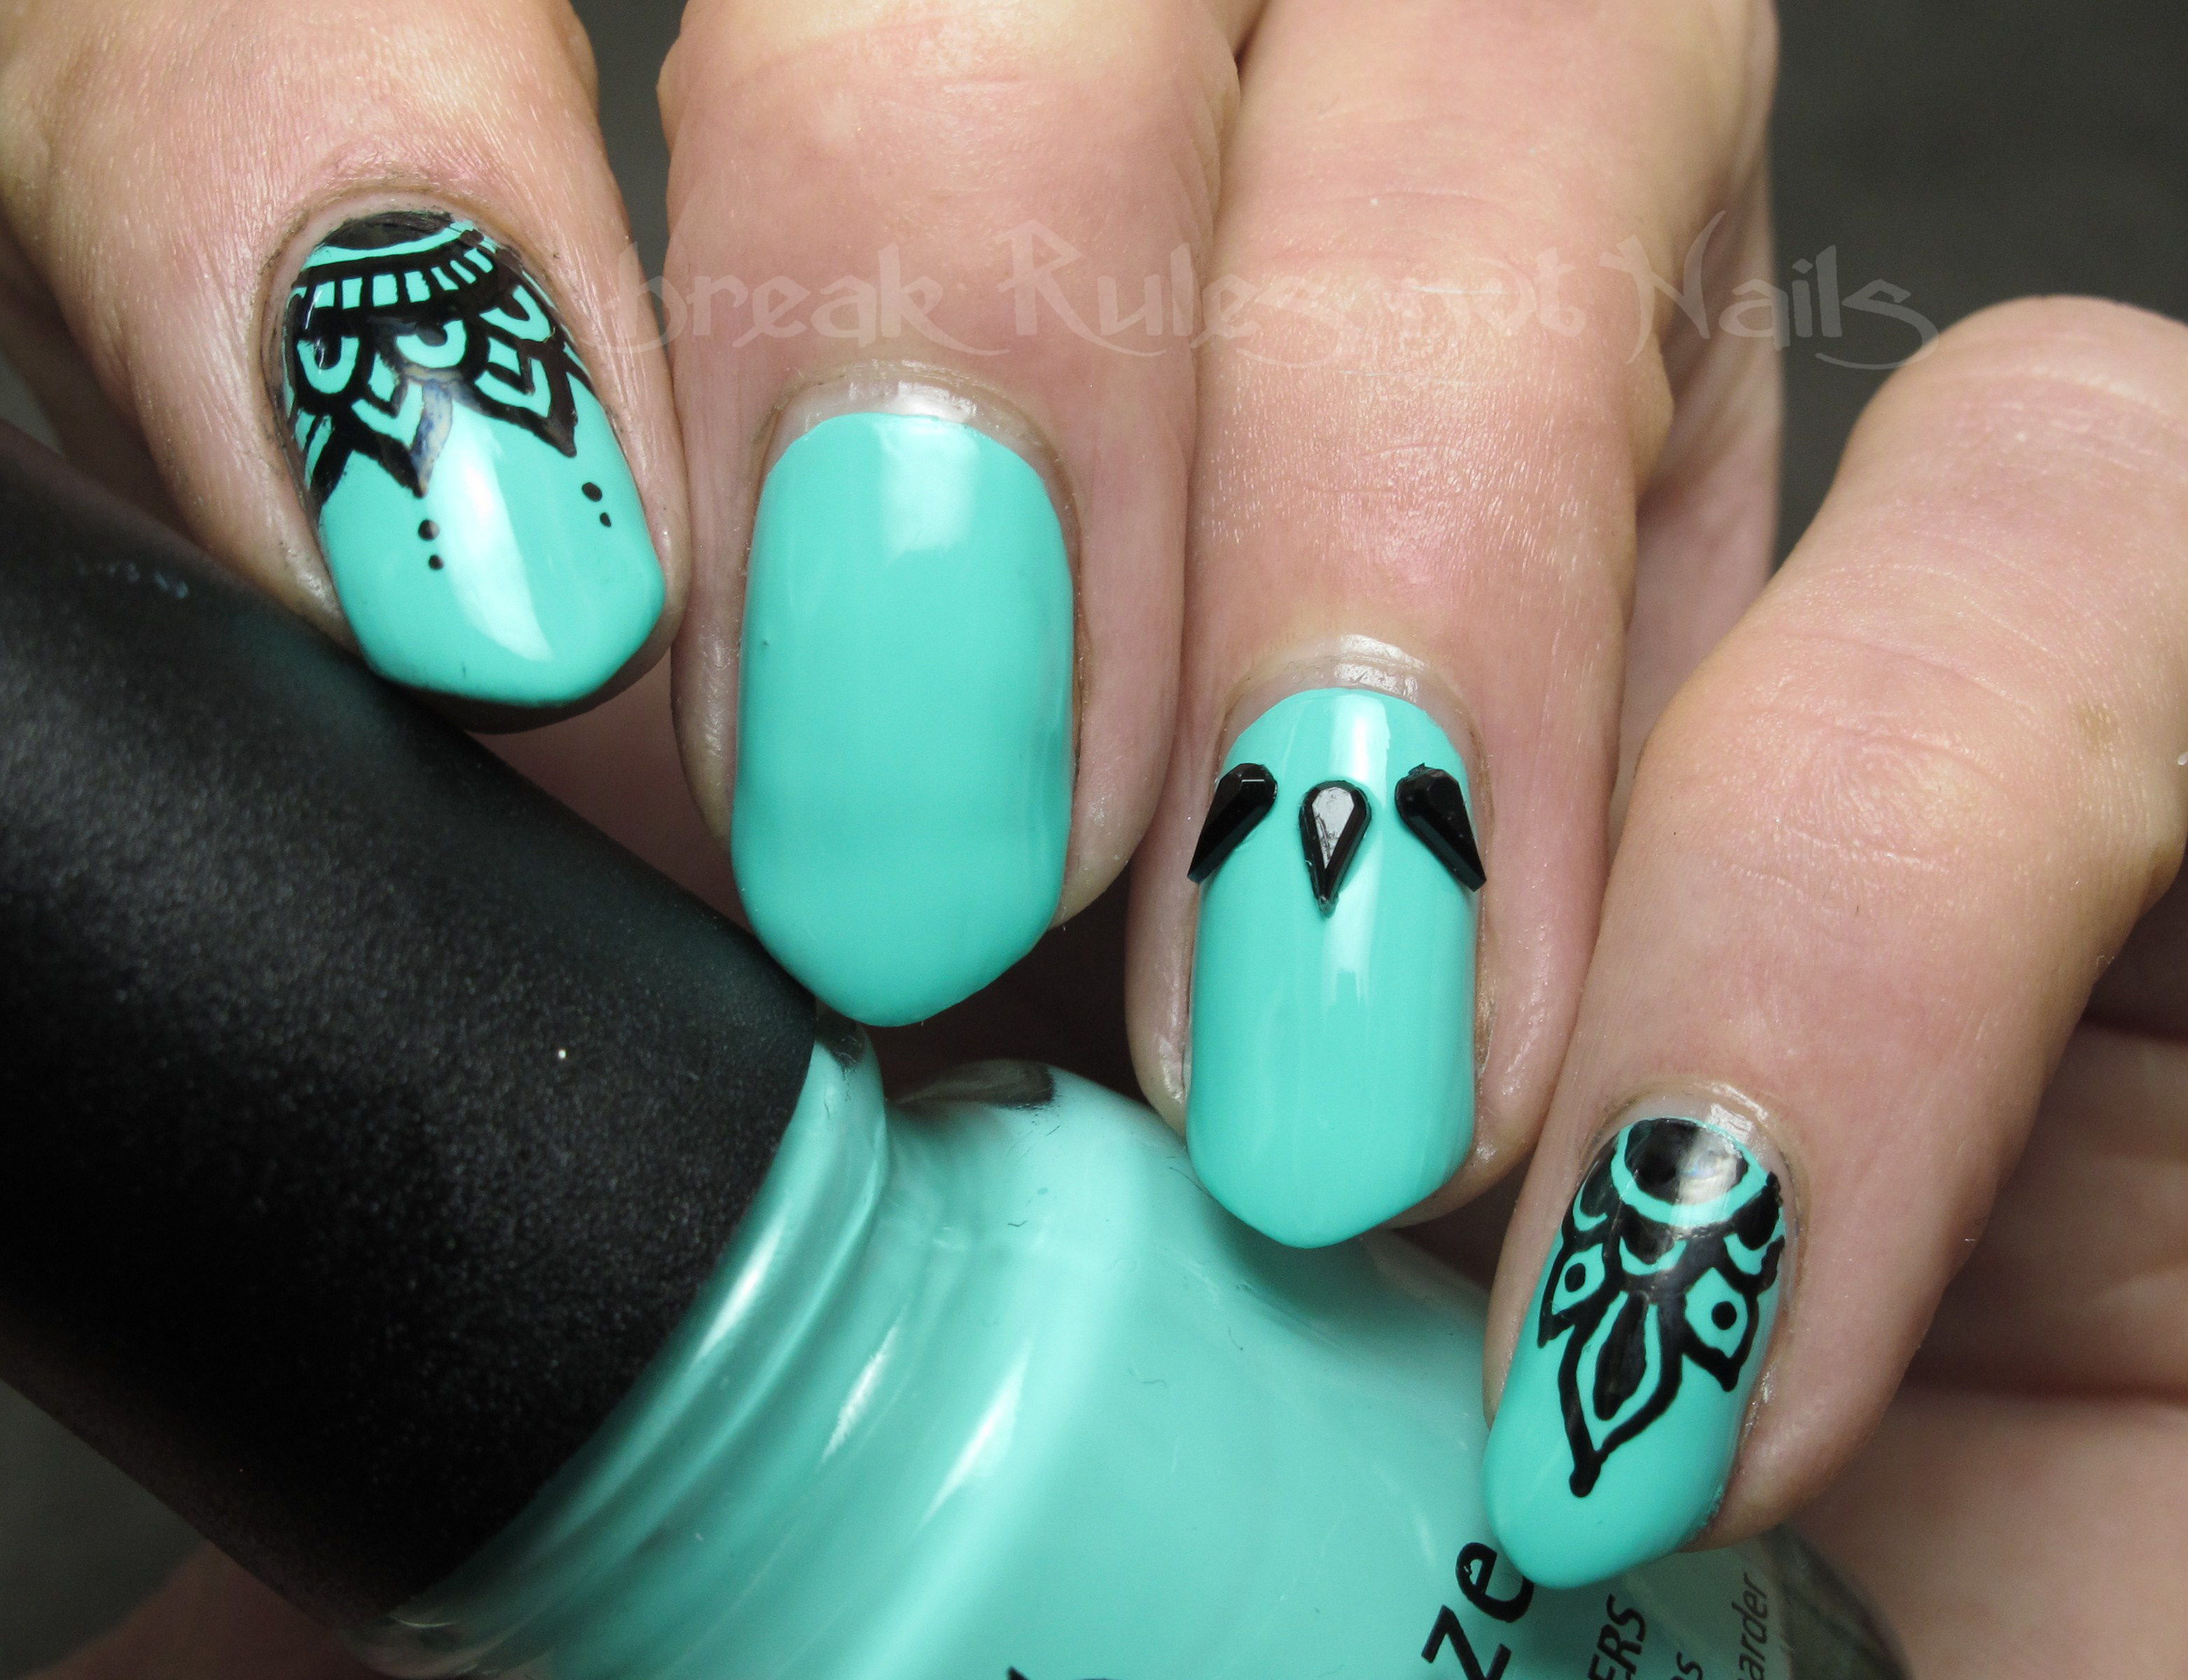 Turquoise and black nail art | Break rules, not nails